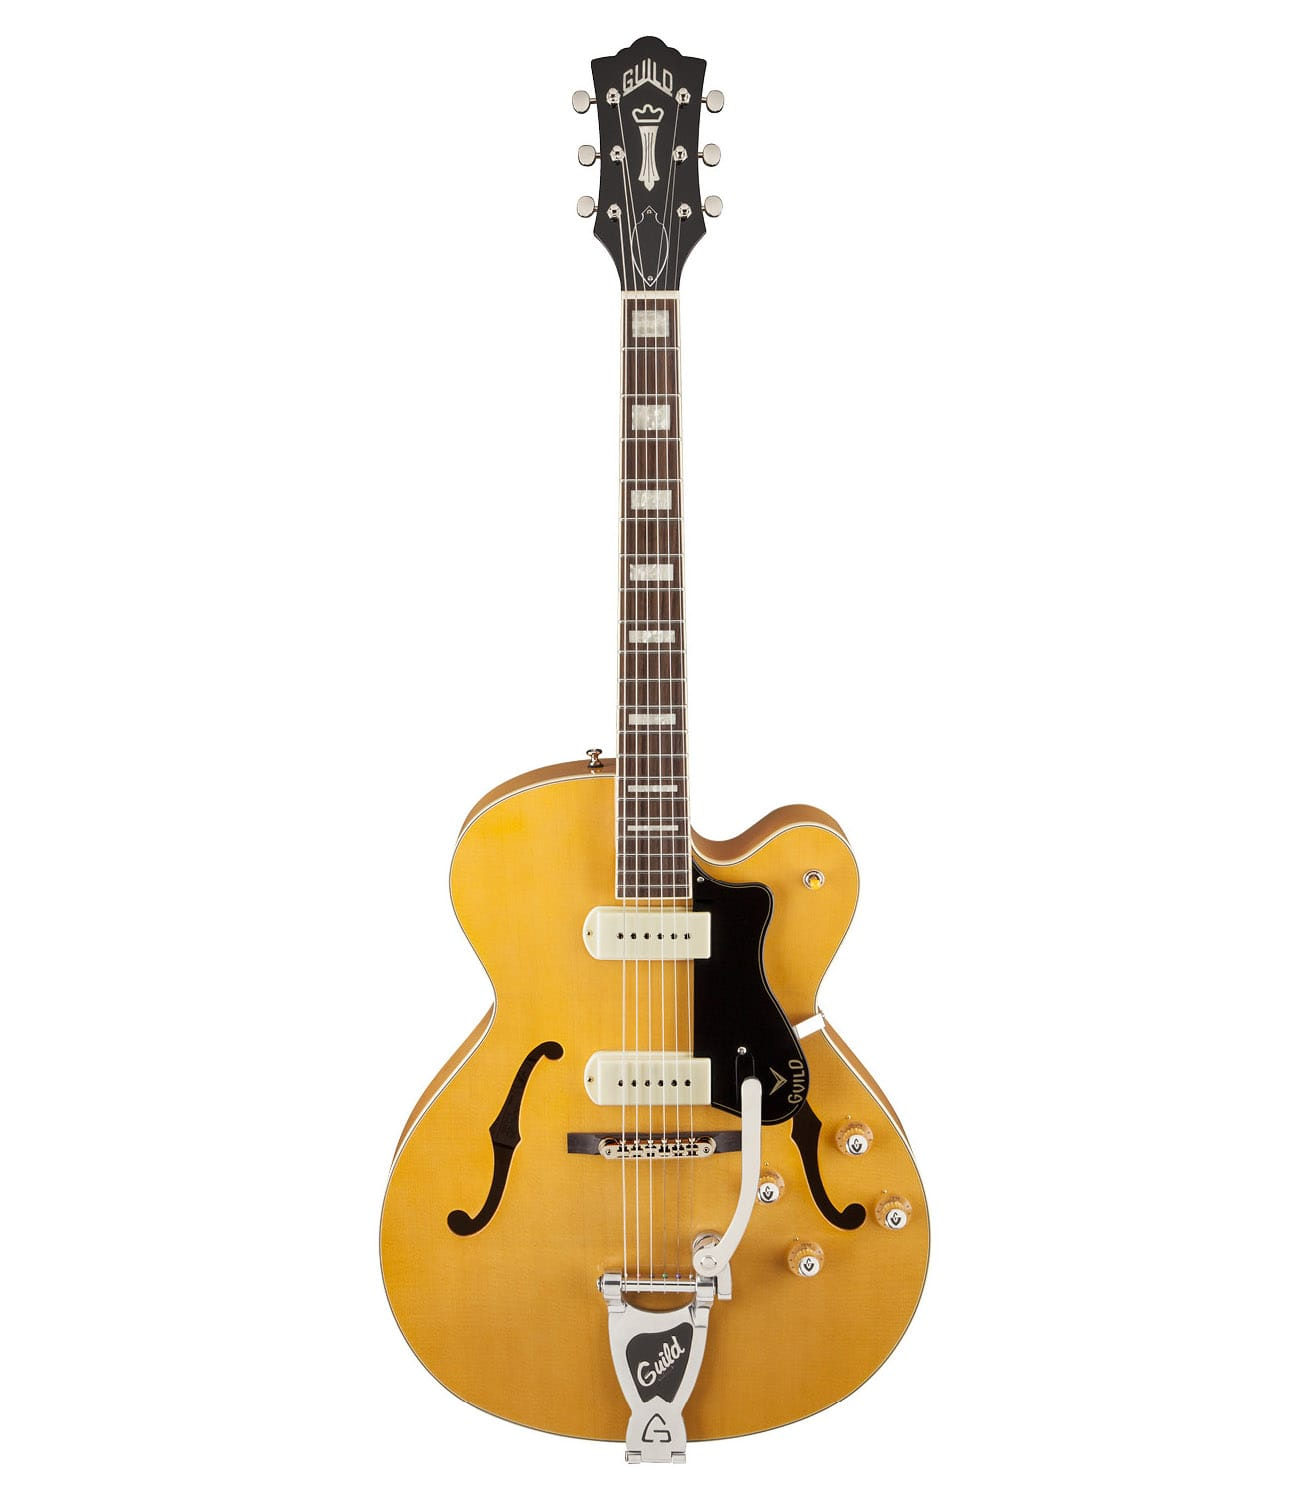 Guild - X 175B Manhattan Hollow Body Blonde Finish